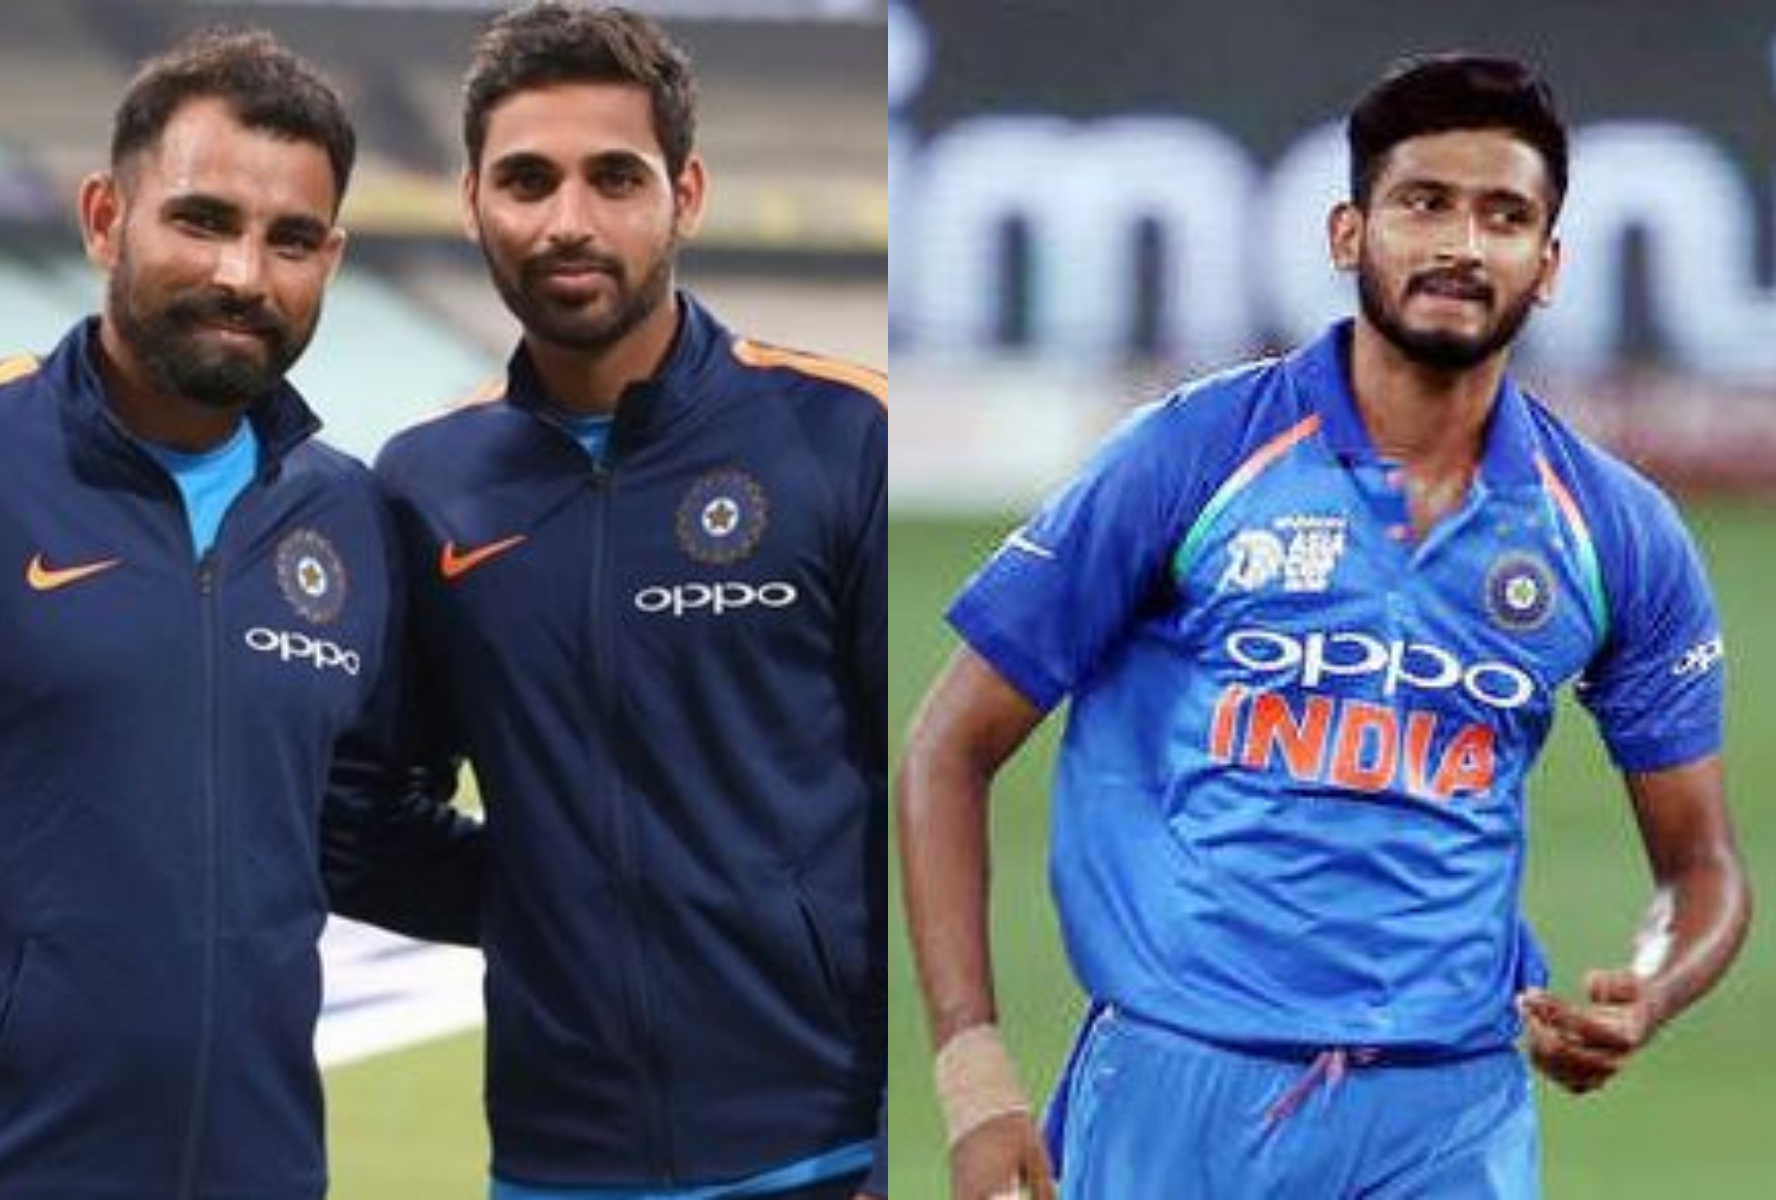 In absence of Bumrah, Bhuvneshwar, Shami and Khaleel might be the best choices for pace attack